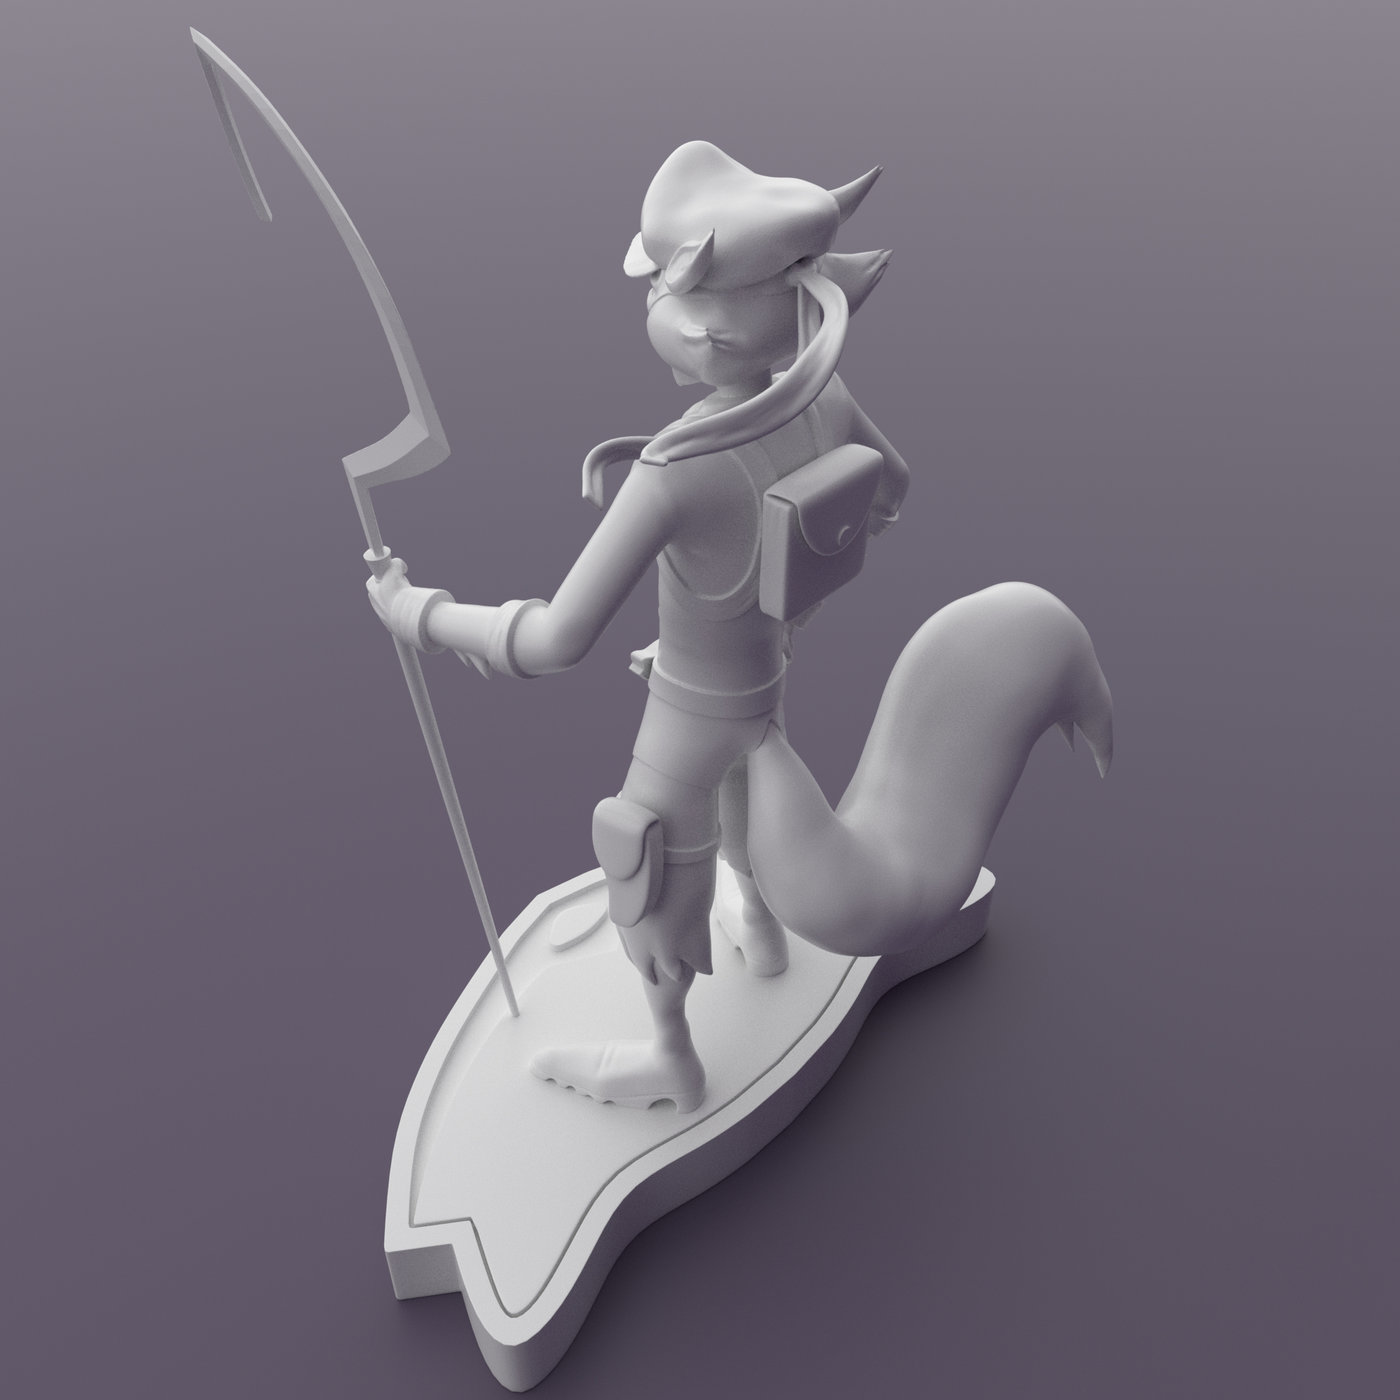 Sly Cooper - Sly Cooper series